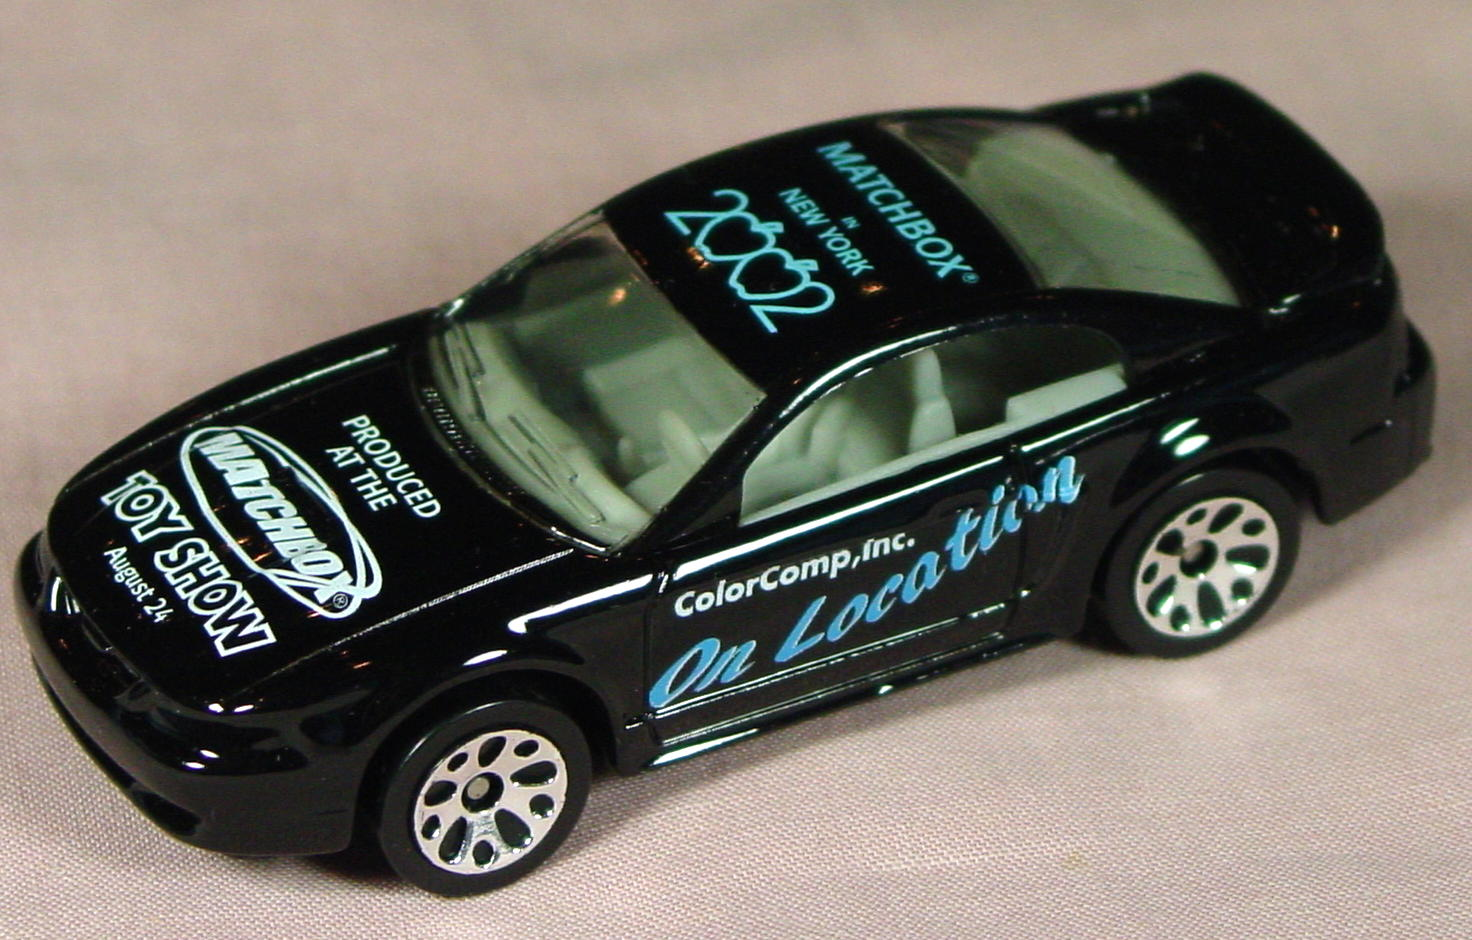 ASAP-CCI 17 I 29 - 99 Ford Mustang Black blue MBX NY 2002 on location CCI